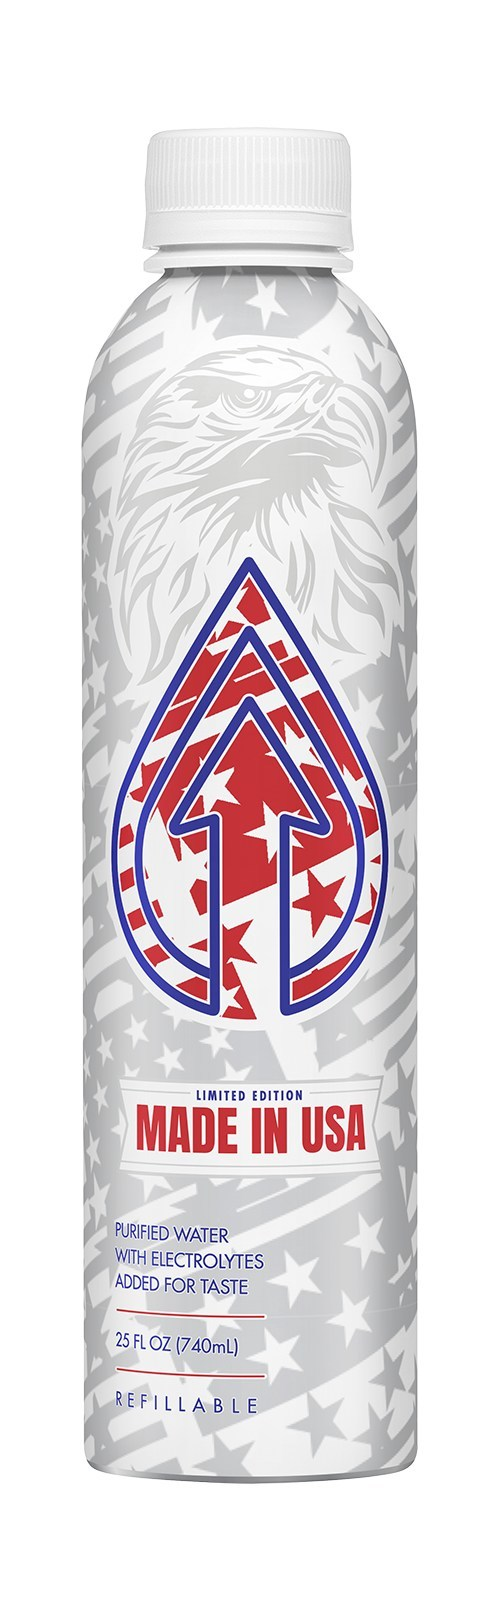 Celebrating patriotism and sustainability, PATH is supporting Wounded Warrior Project by donating 10 cents from every refillable 'Made in the USA' bottled water sold with a minimum committment of $50k.